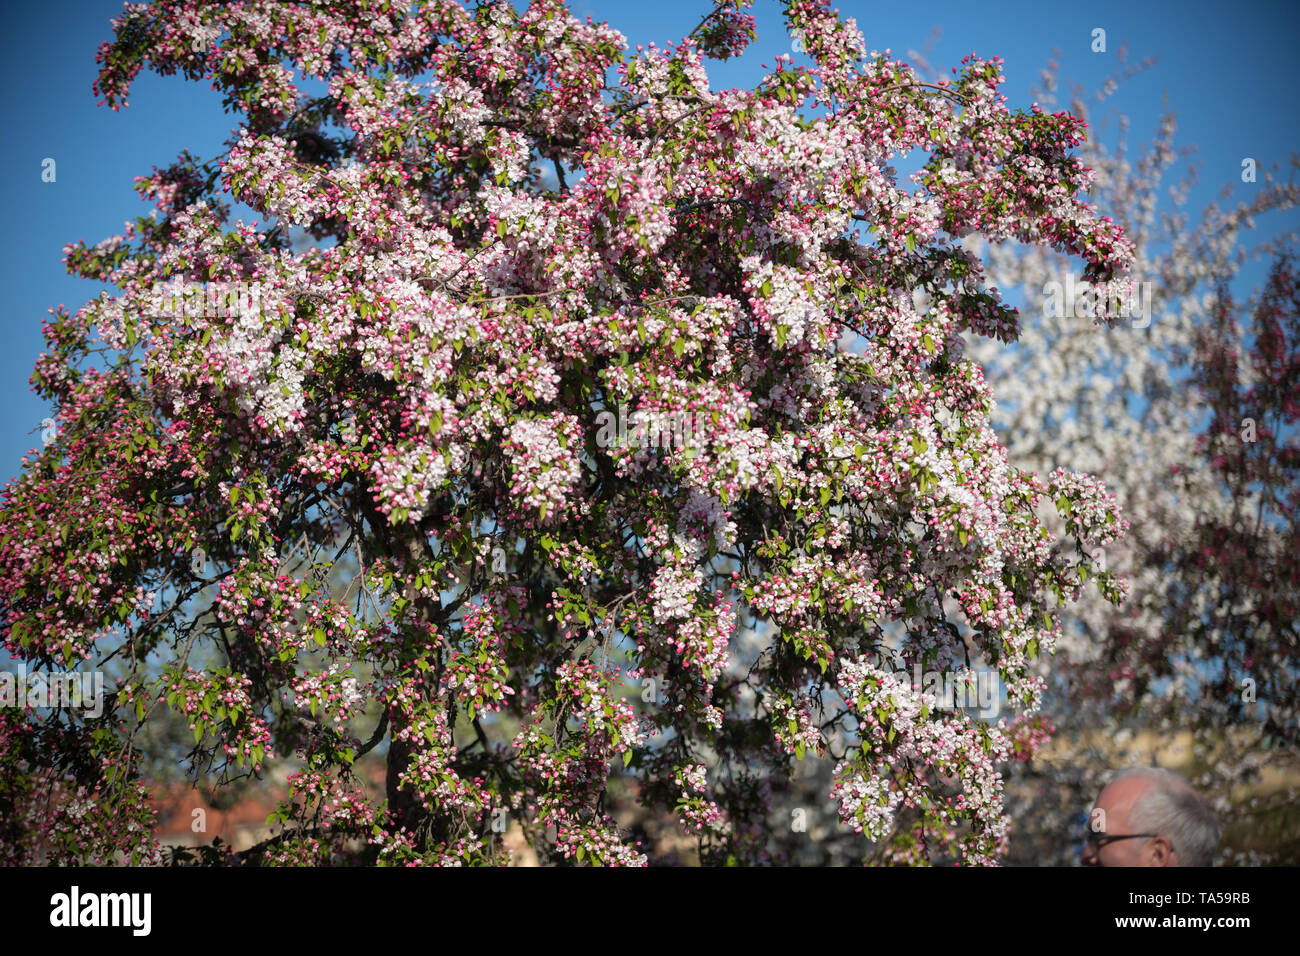 A big rosy blooming tree in a day light. Mid shot Stock Photo